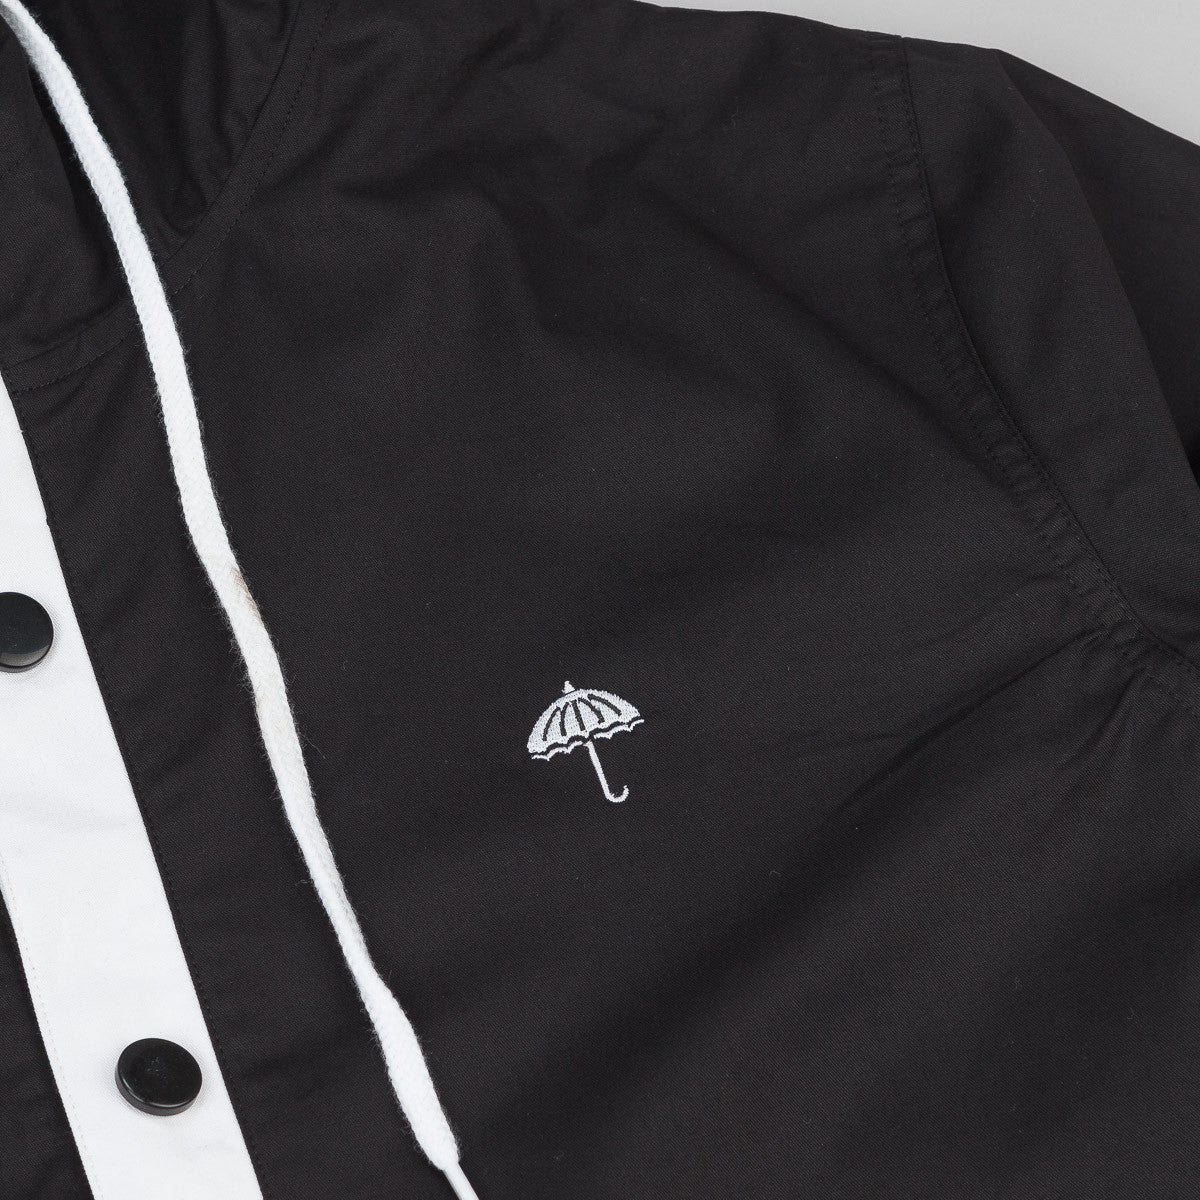 Helas Badman Hooded Coach Jacket - Black